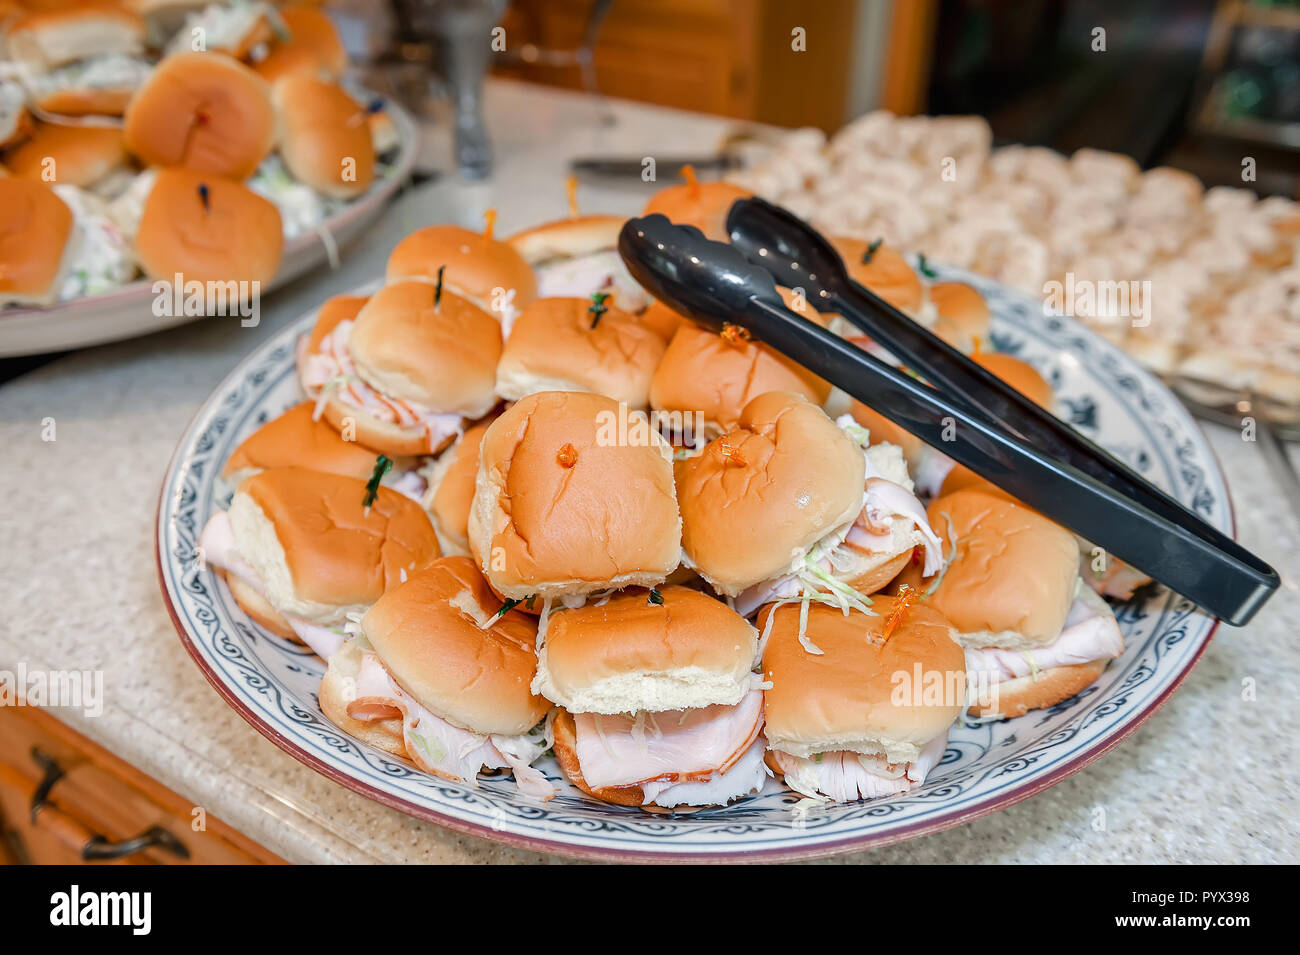 A pile of prepared turkey sandwiches stacked on a plate with tongs for serving. - Stock Image